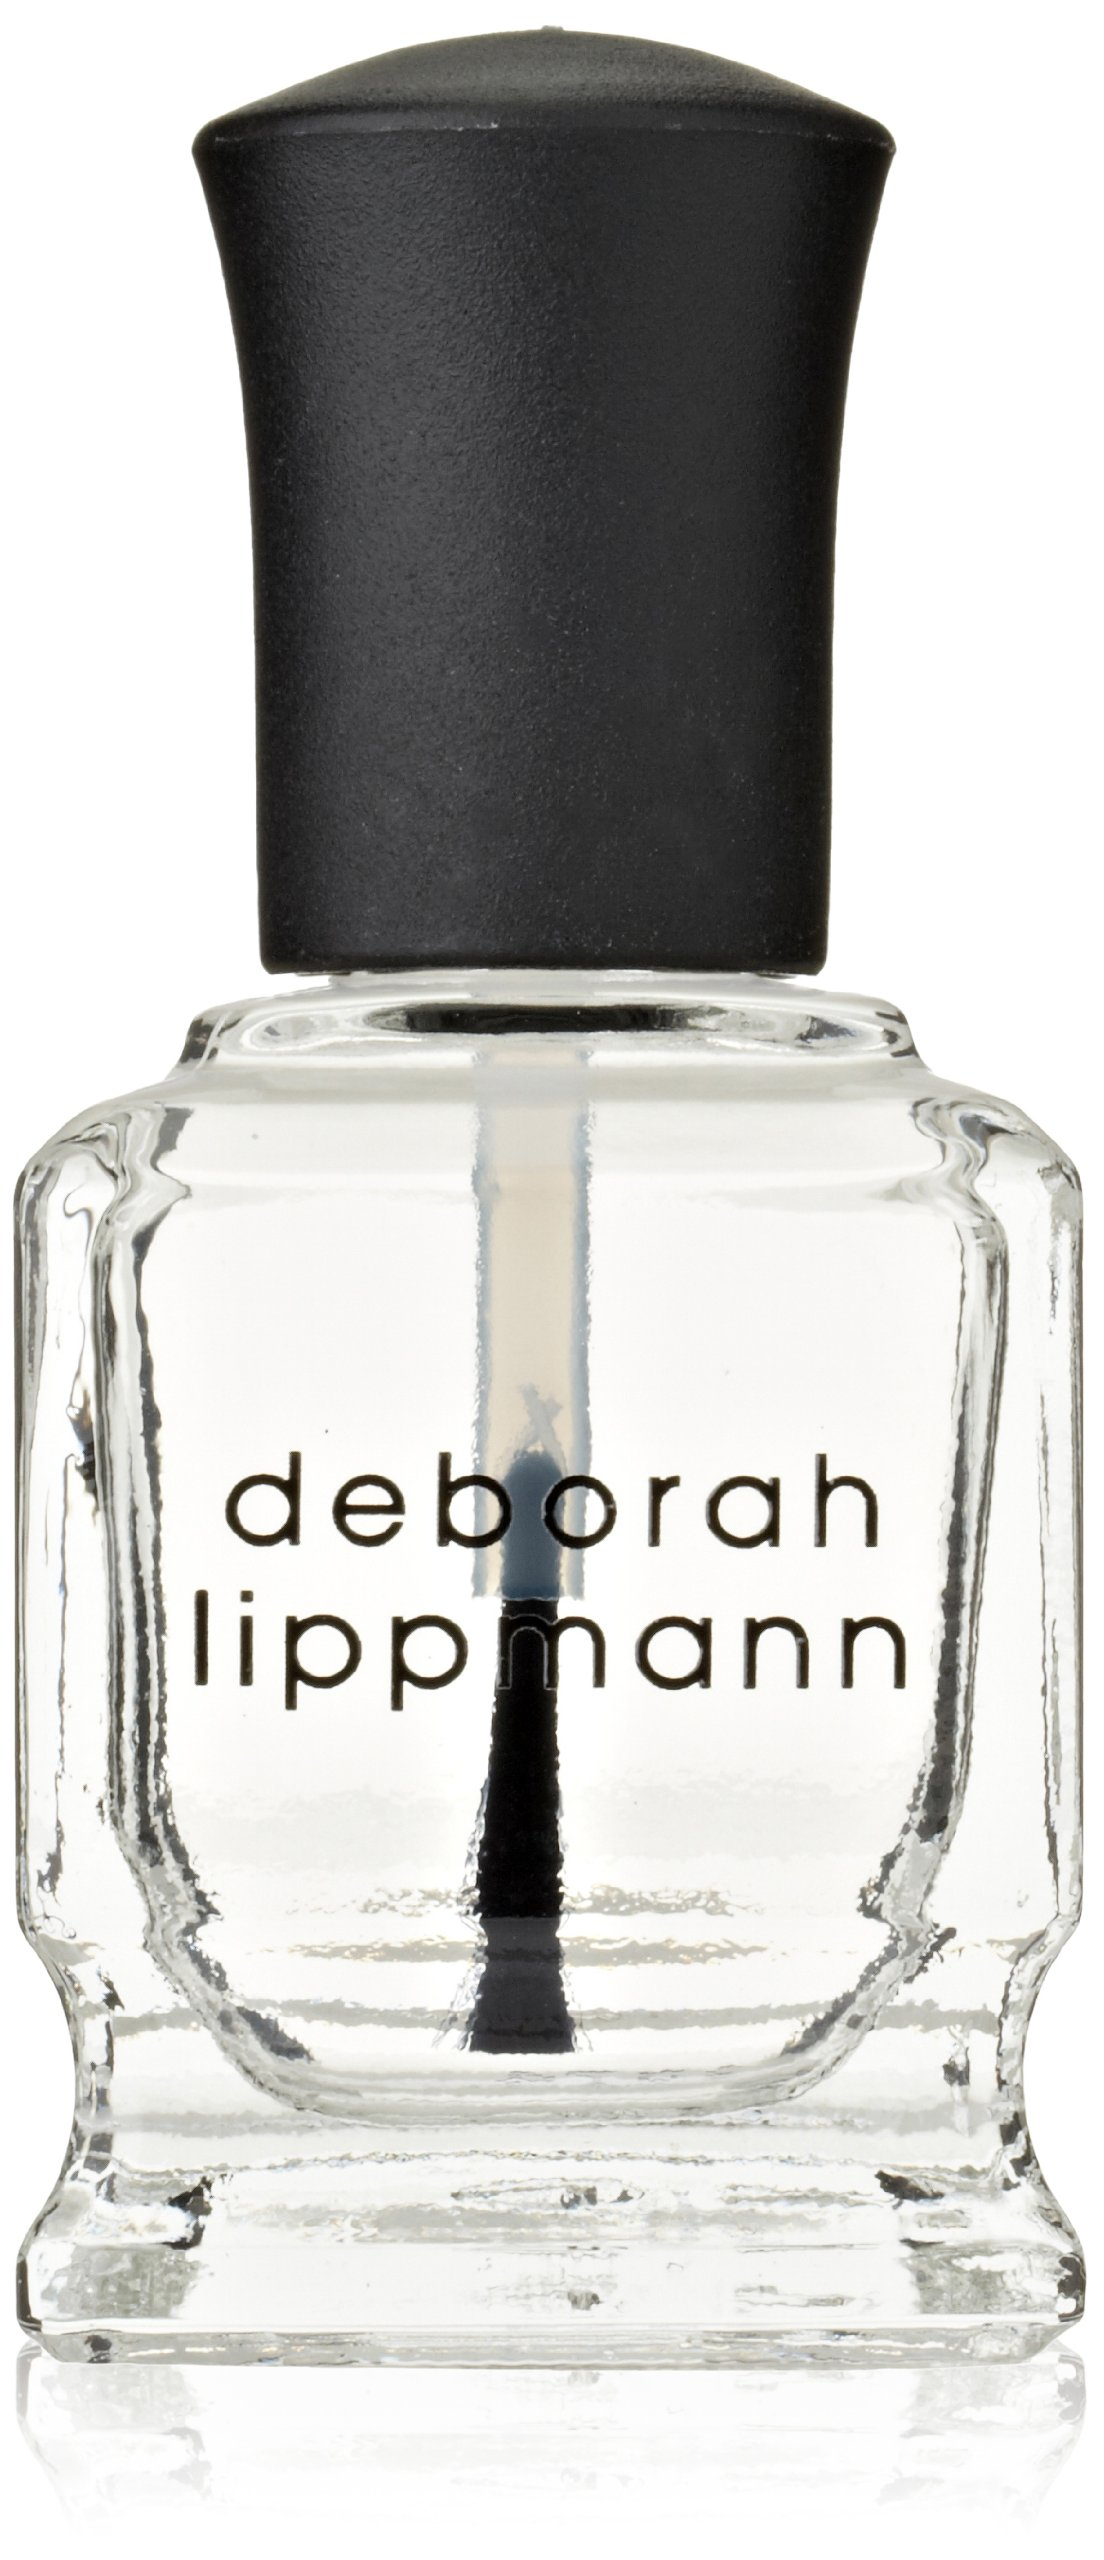 deborah lippmann Hard Rock Hydrating Hardener Base and Top Coat